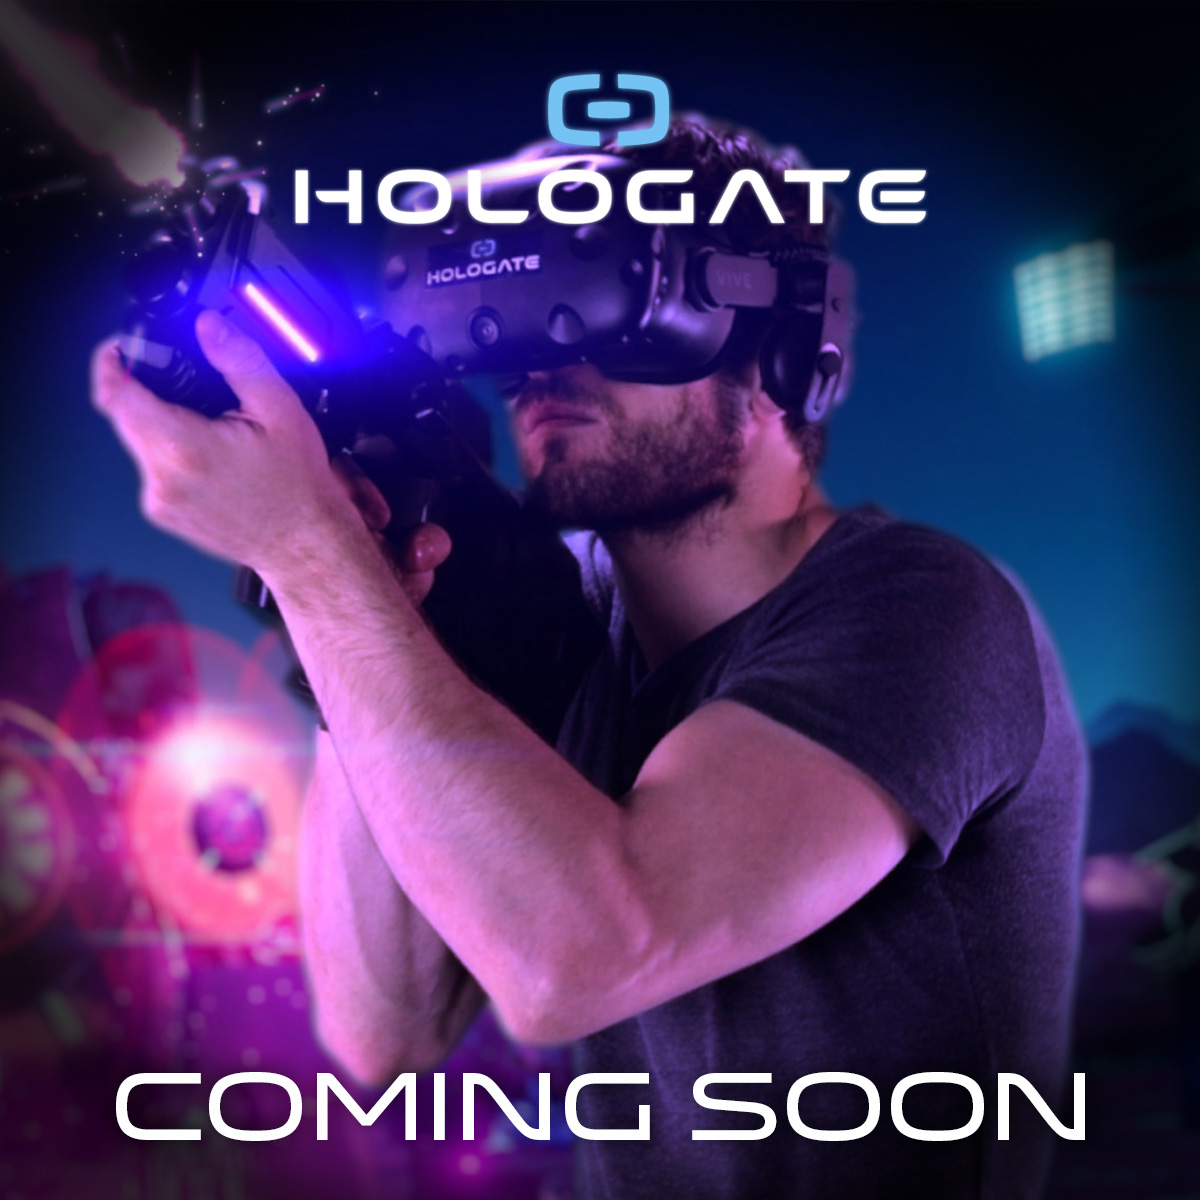 hologate-coming-soon-4